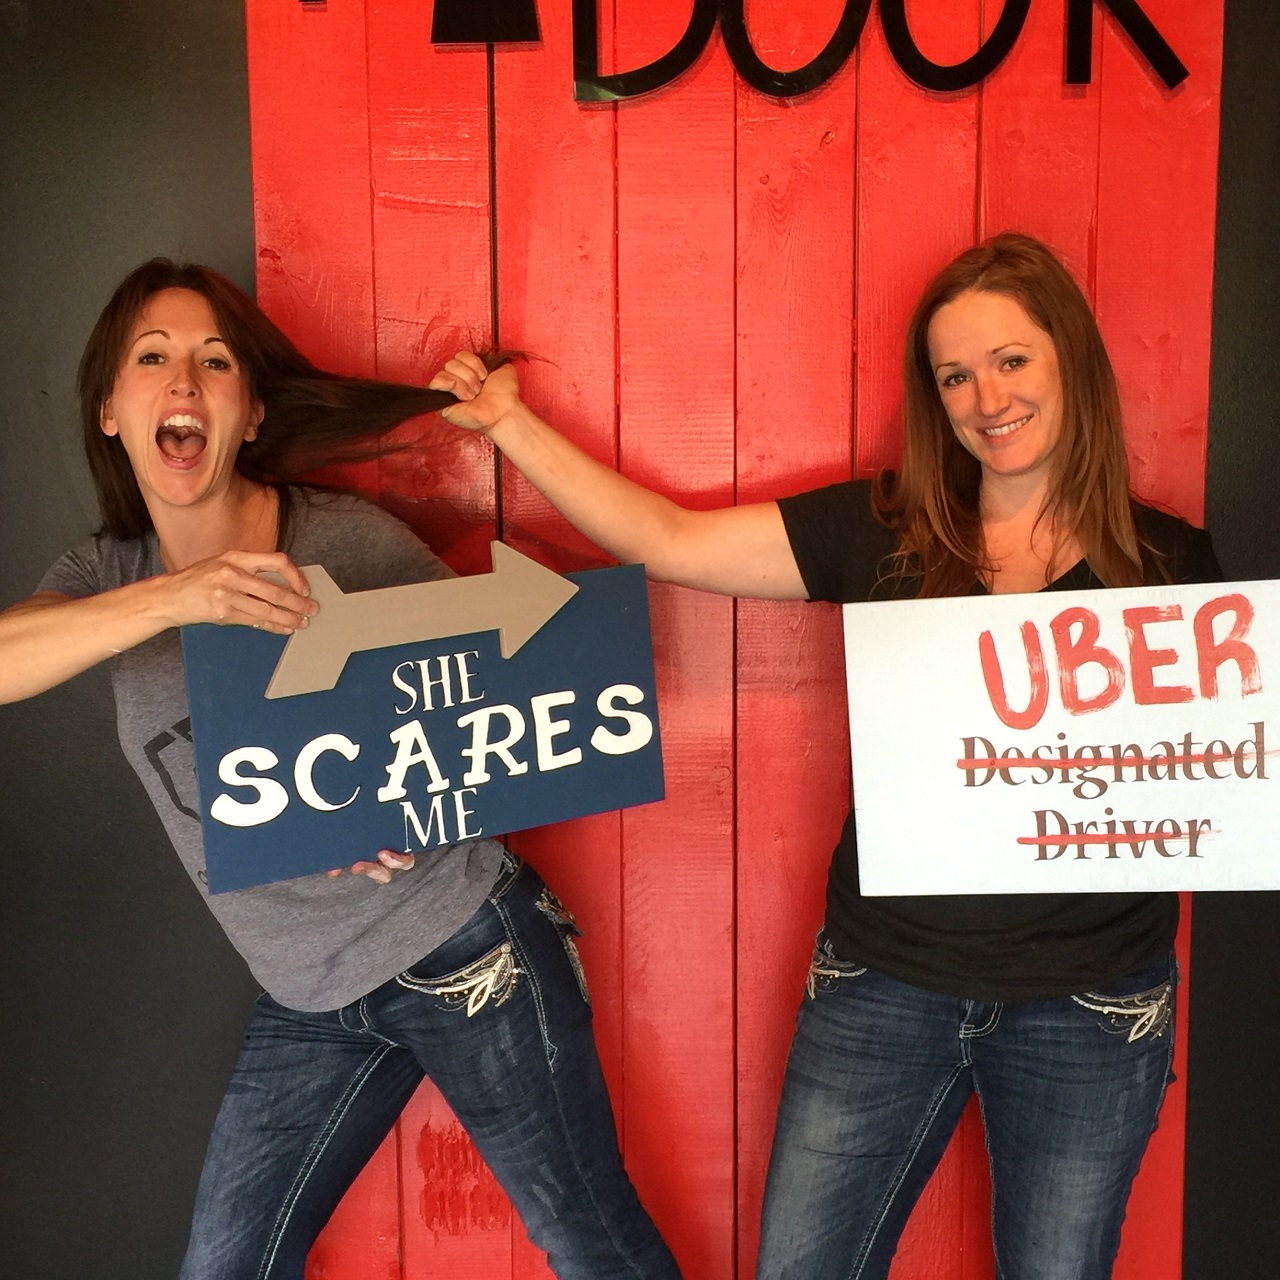 the-final-door-escape-room-columbia-sc-owners-small.jpg